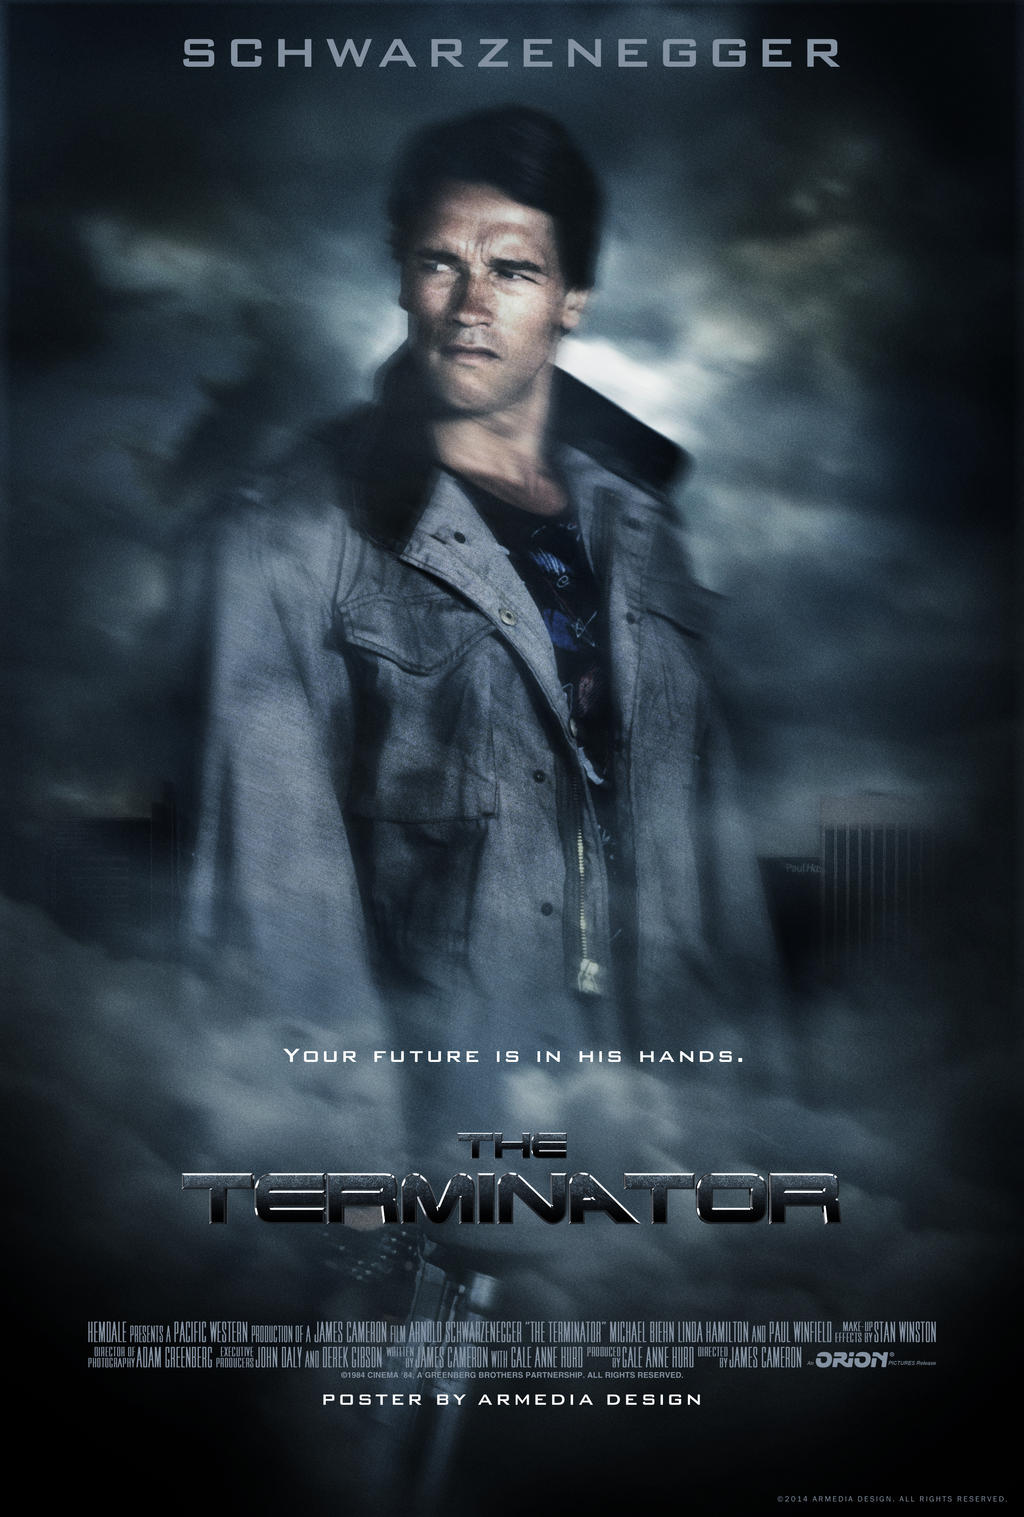 The Terminator Movie Poster 000 by altobello02 on DeviantArt